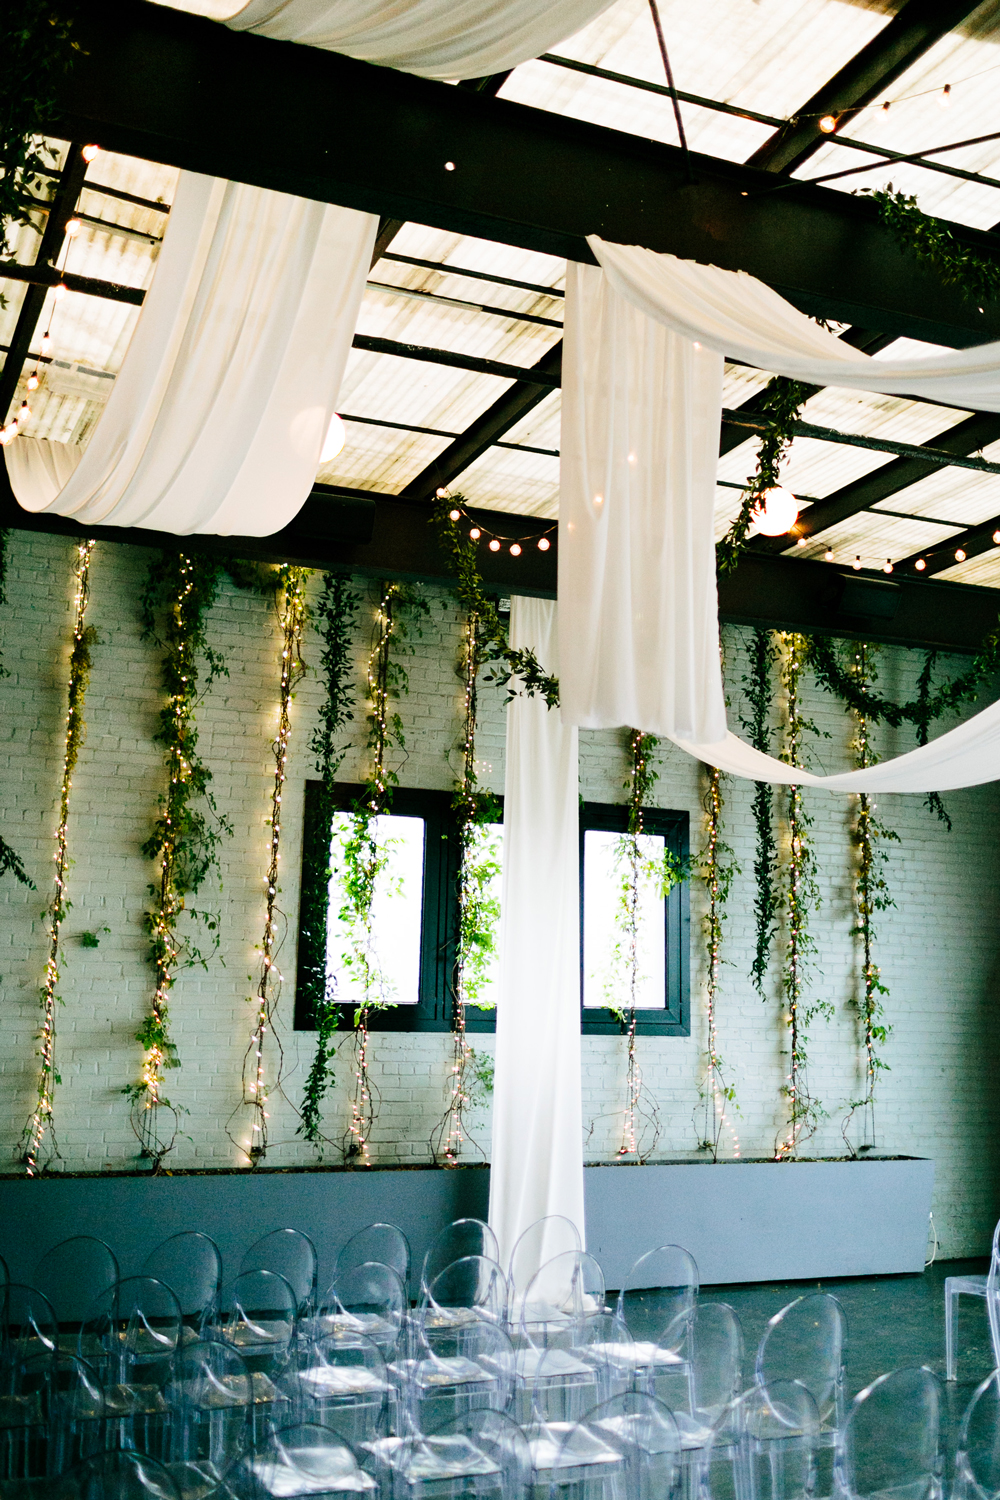 twinkle lights intertwined with ivy against ceremony wall